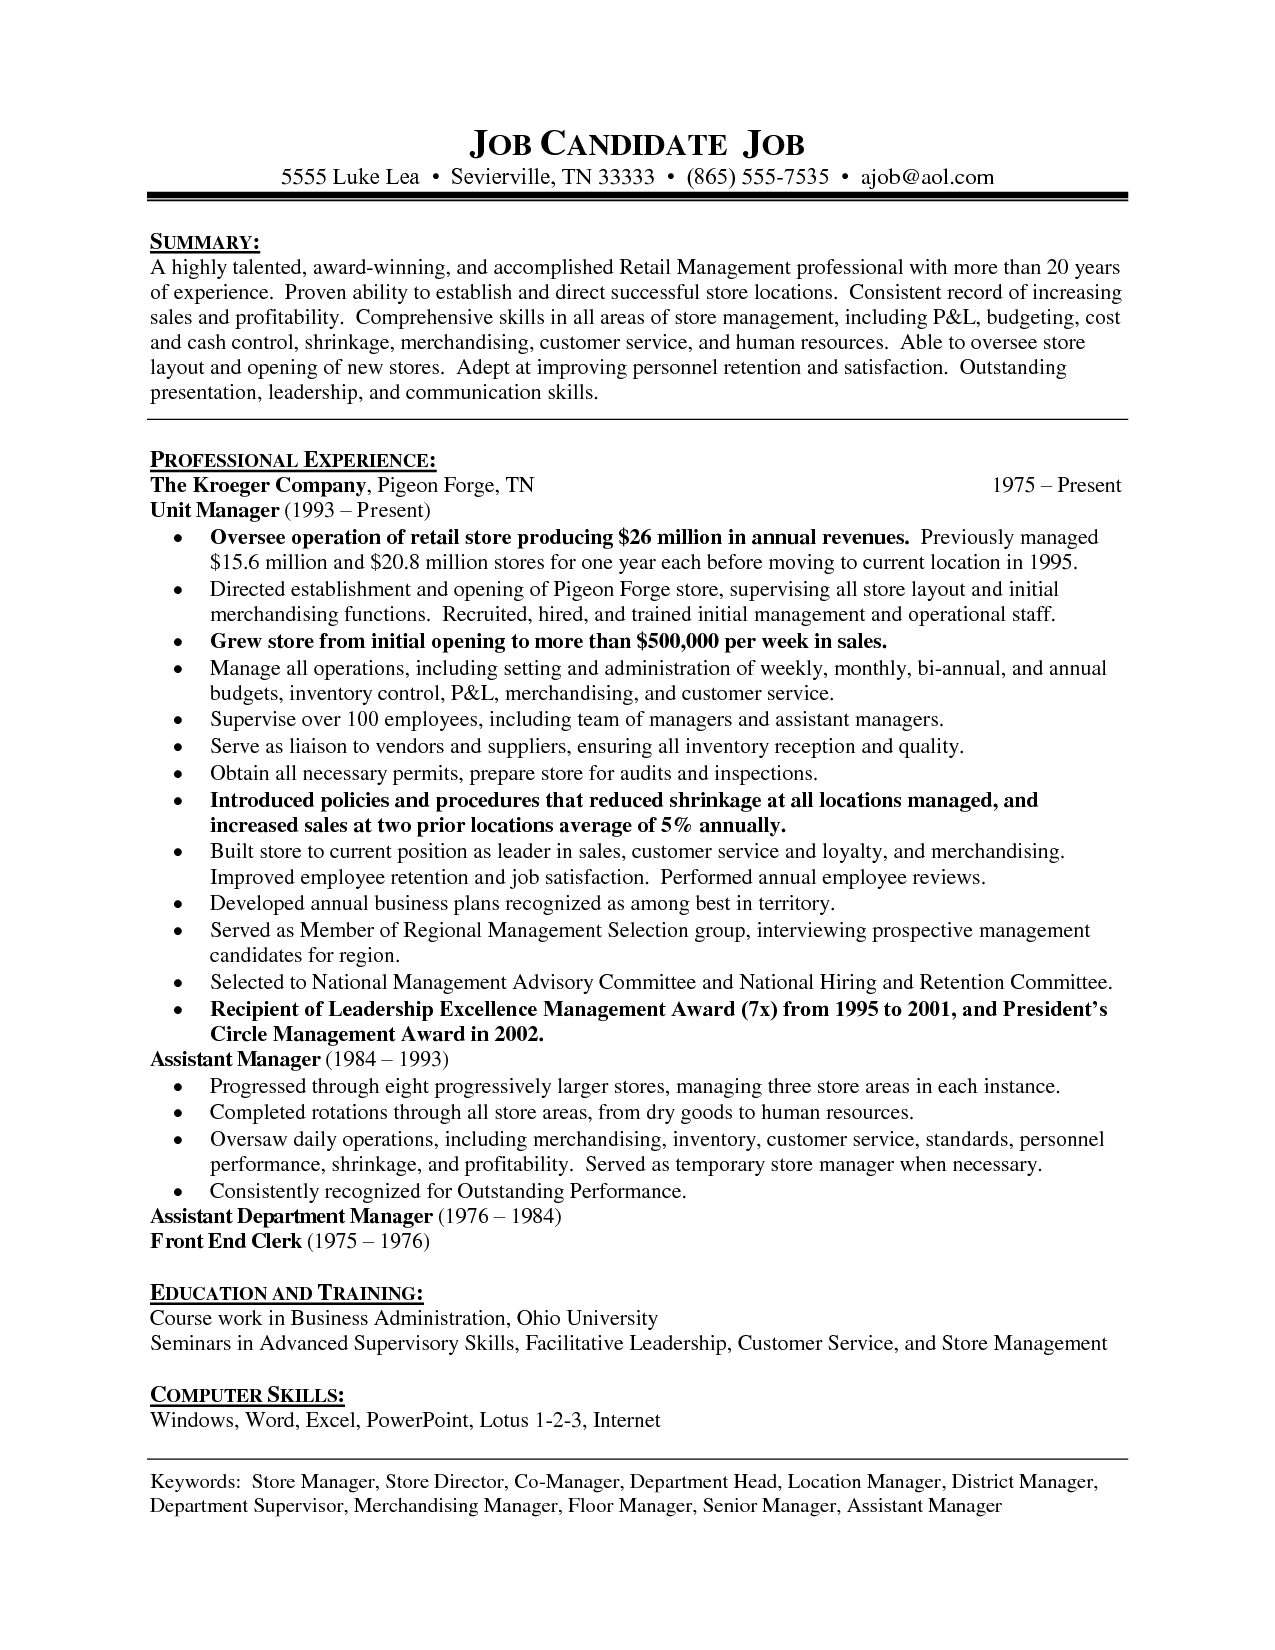 Retail Store Manager Resume Samples department store manager ...